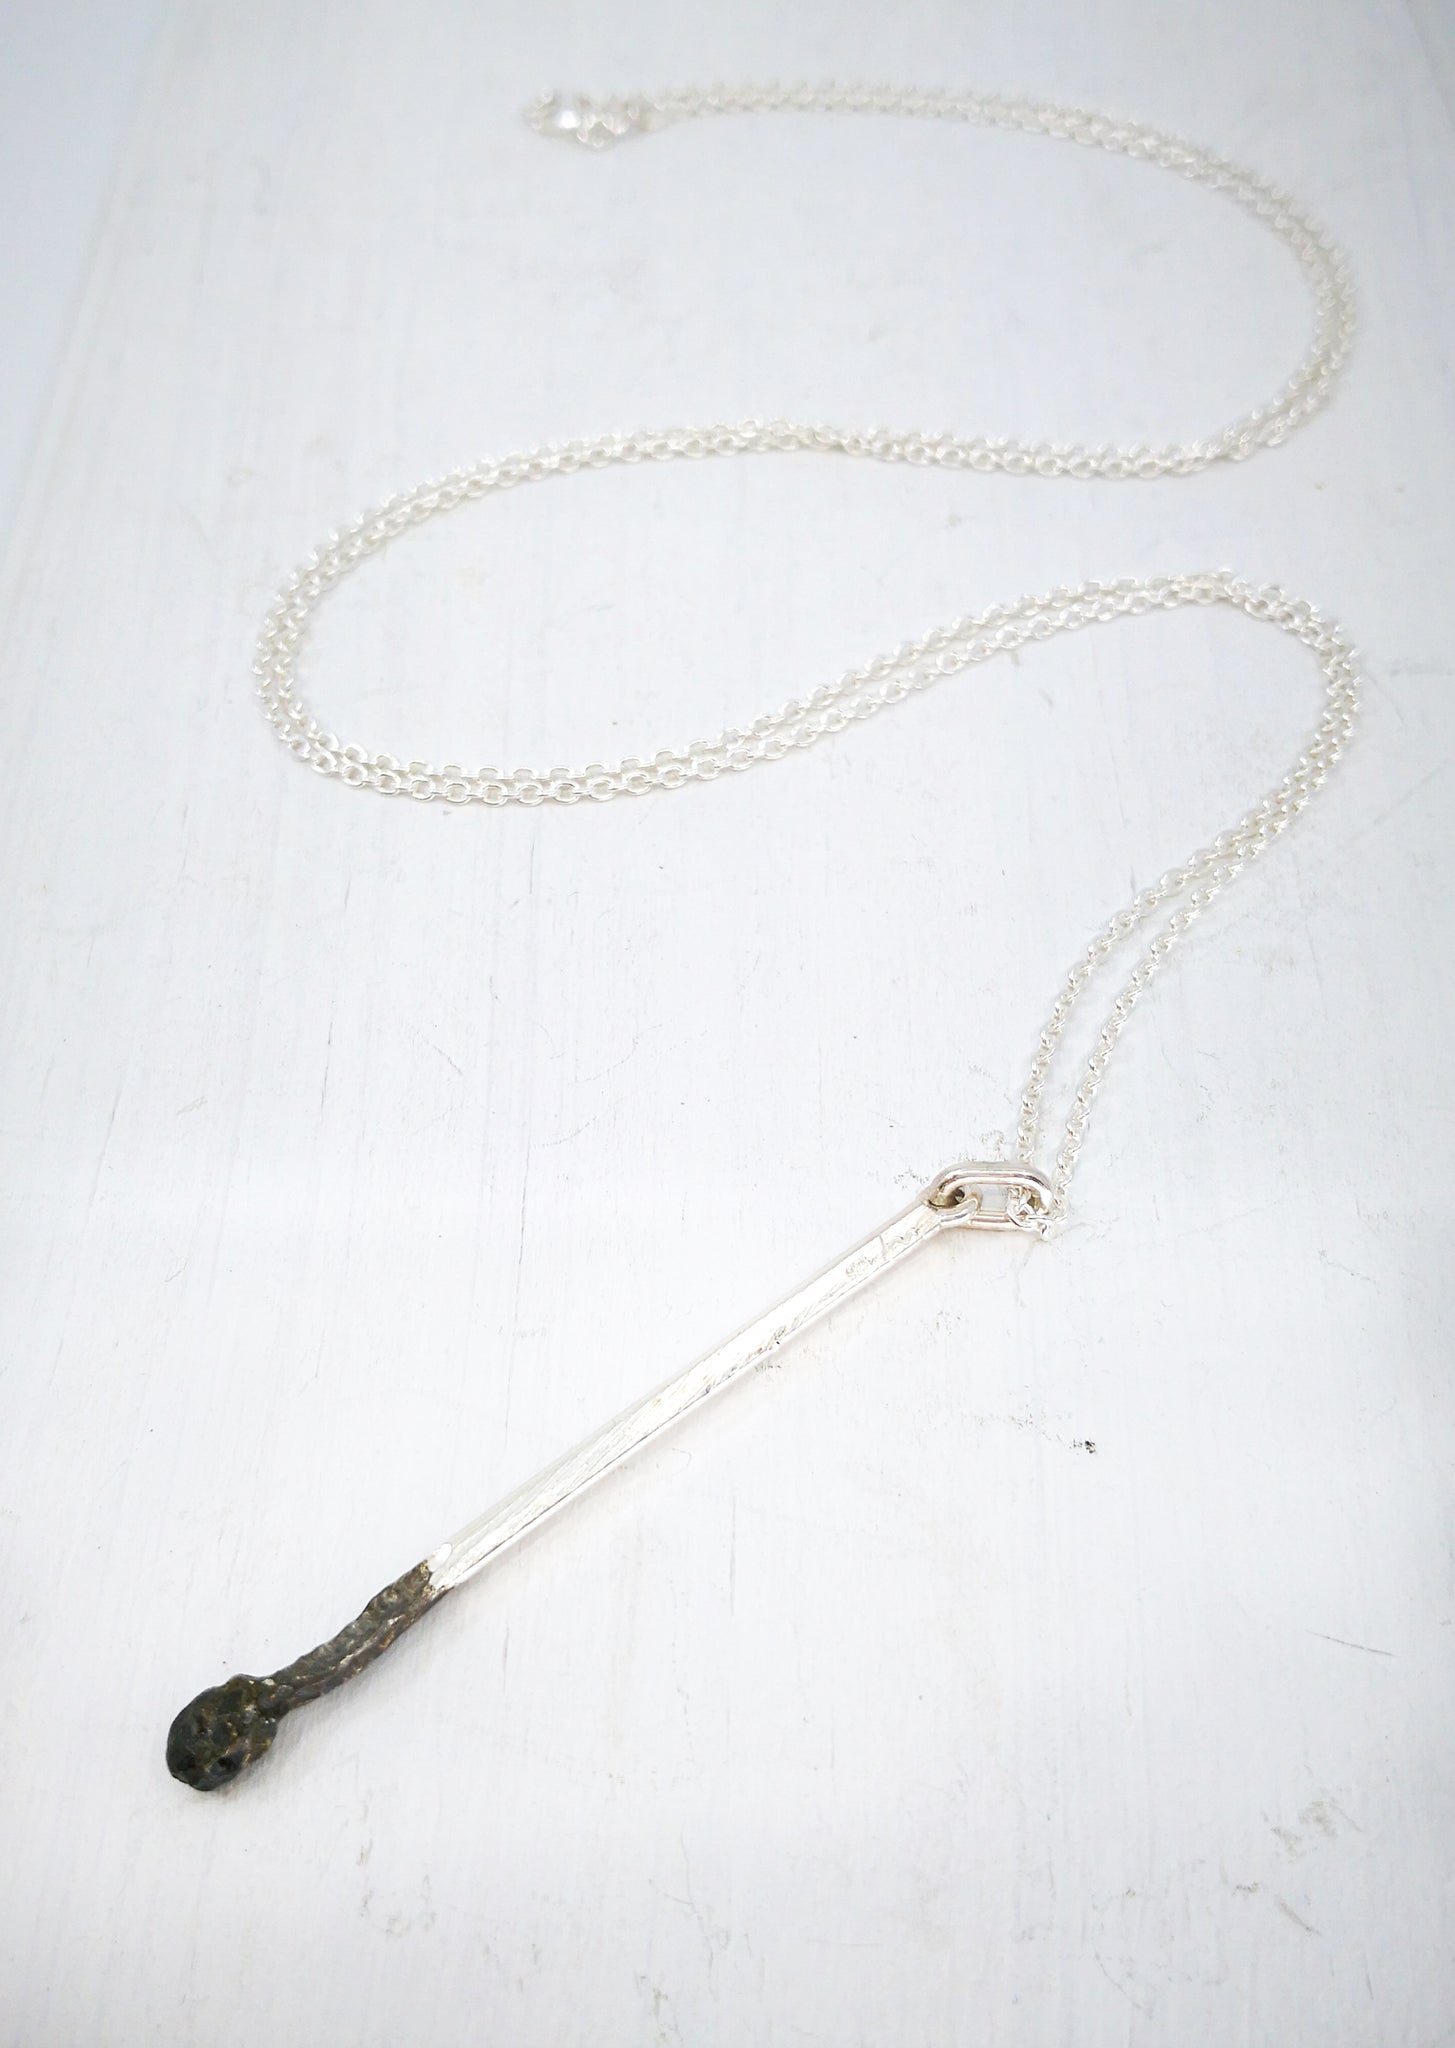 Burnt Match Pendant in silver by David McLeod